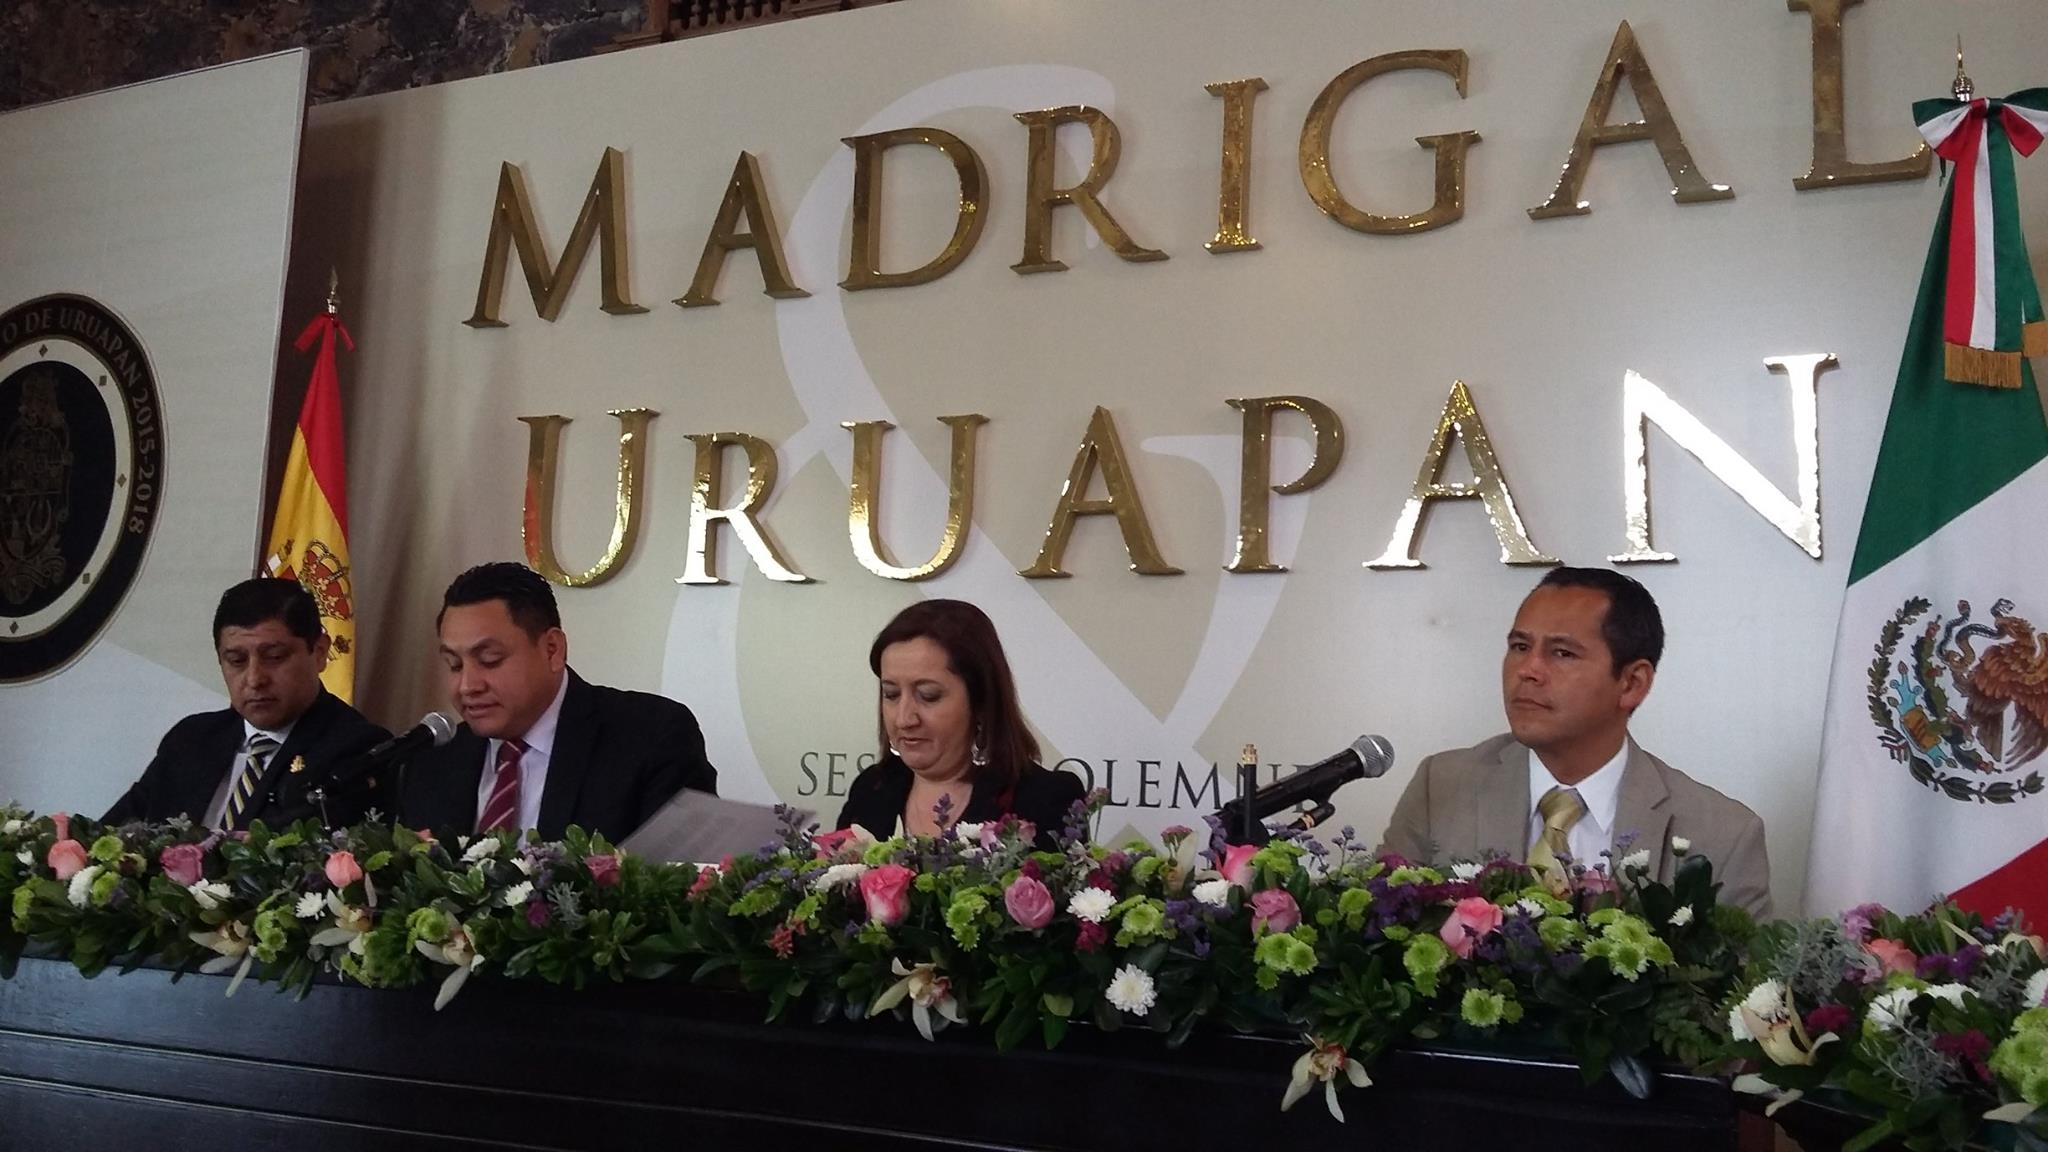 Madrigal-Uruapan_001